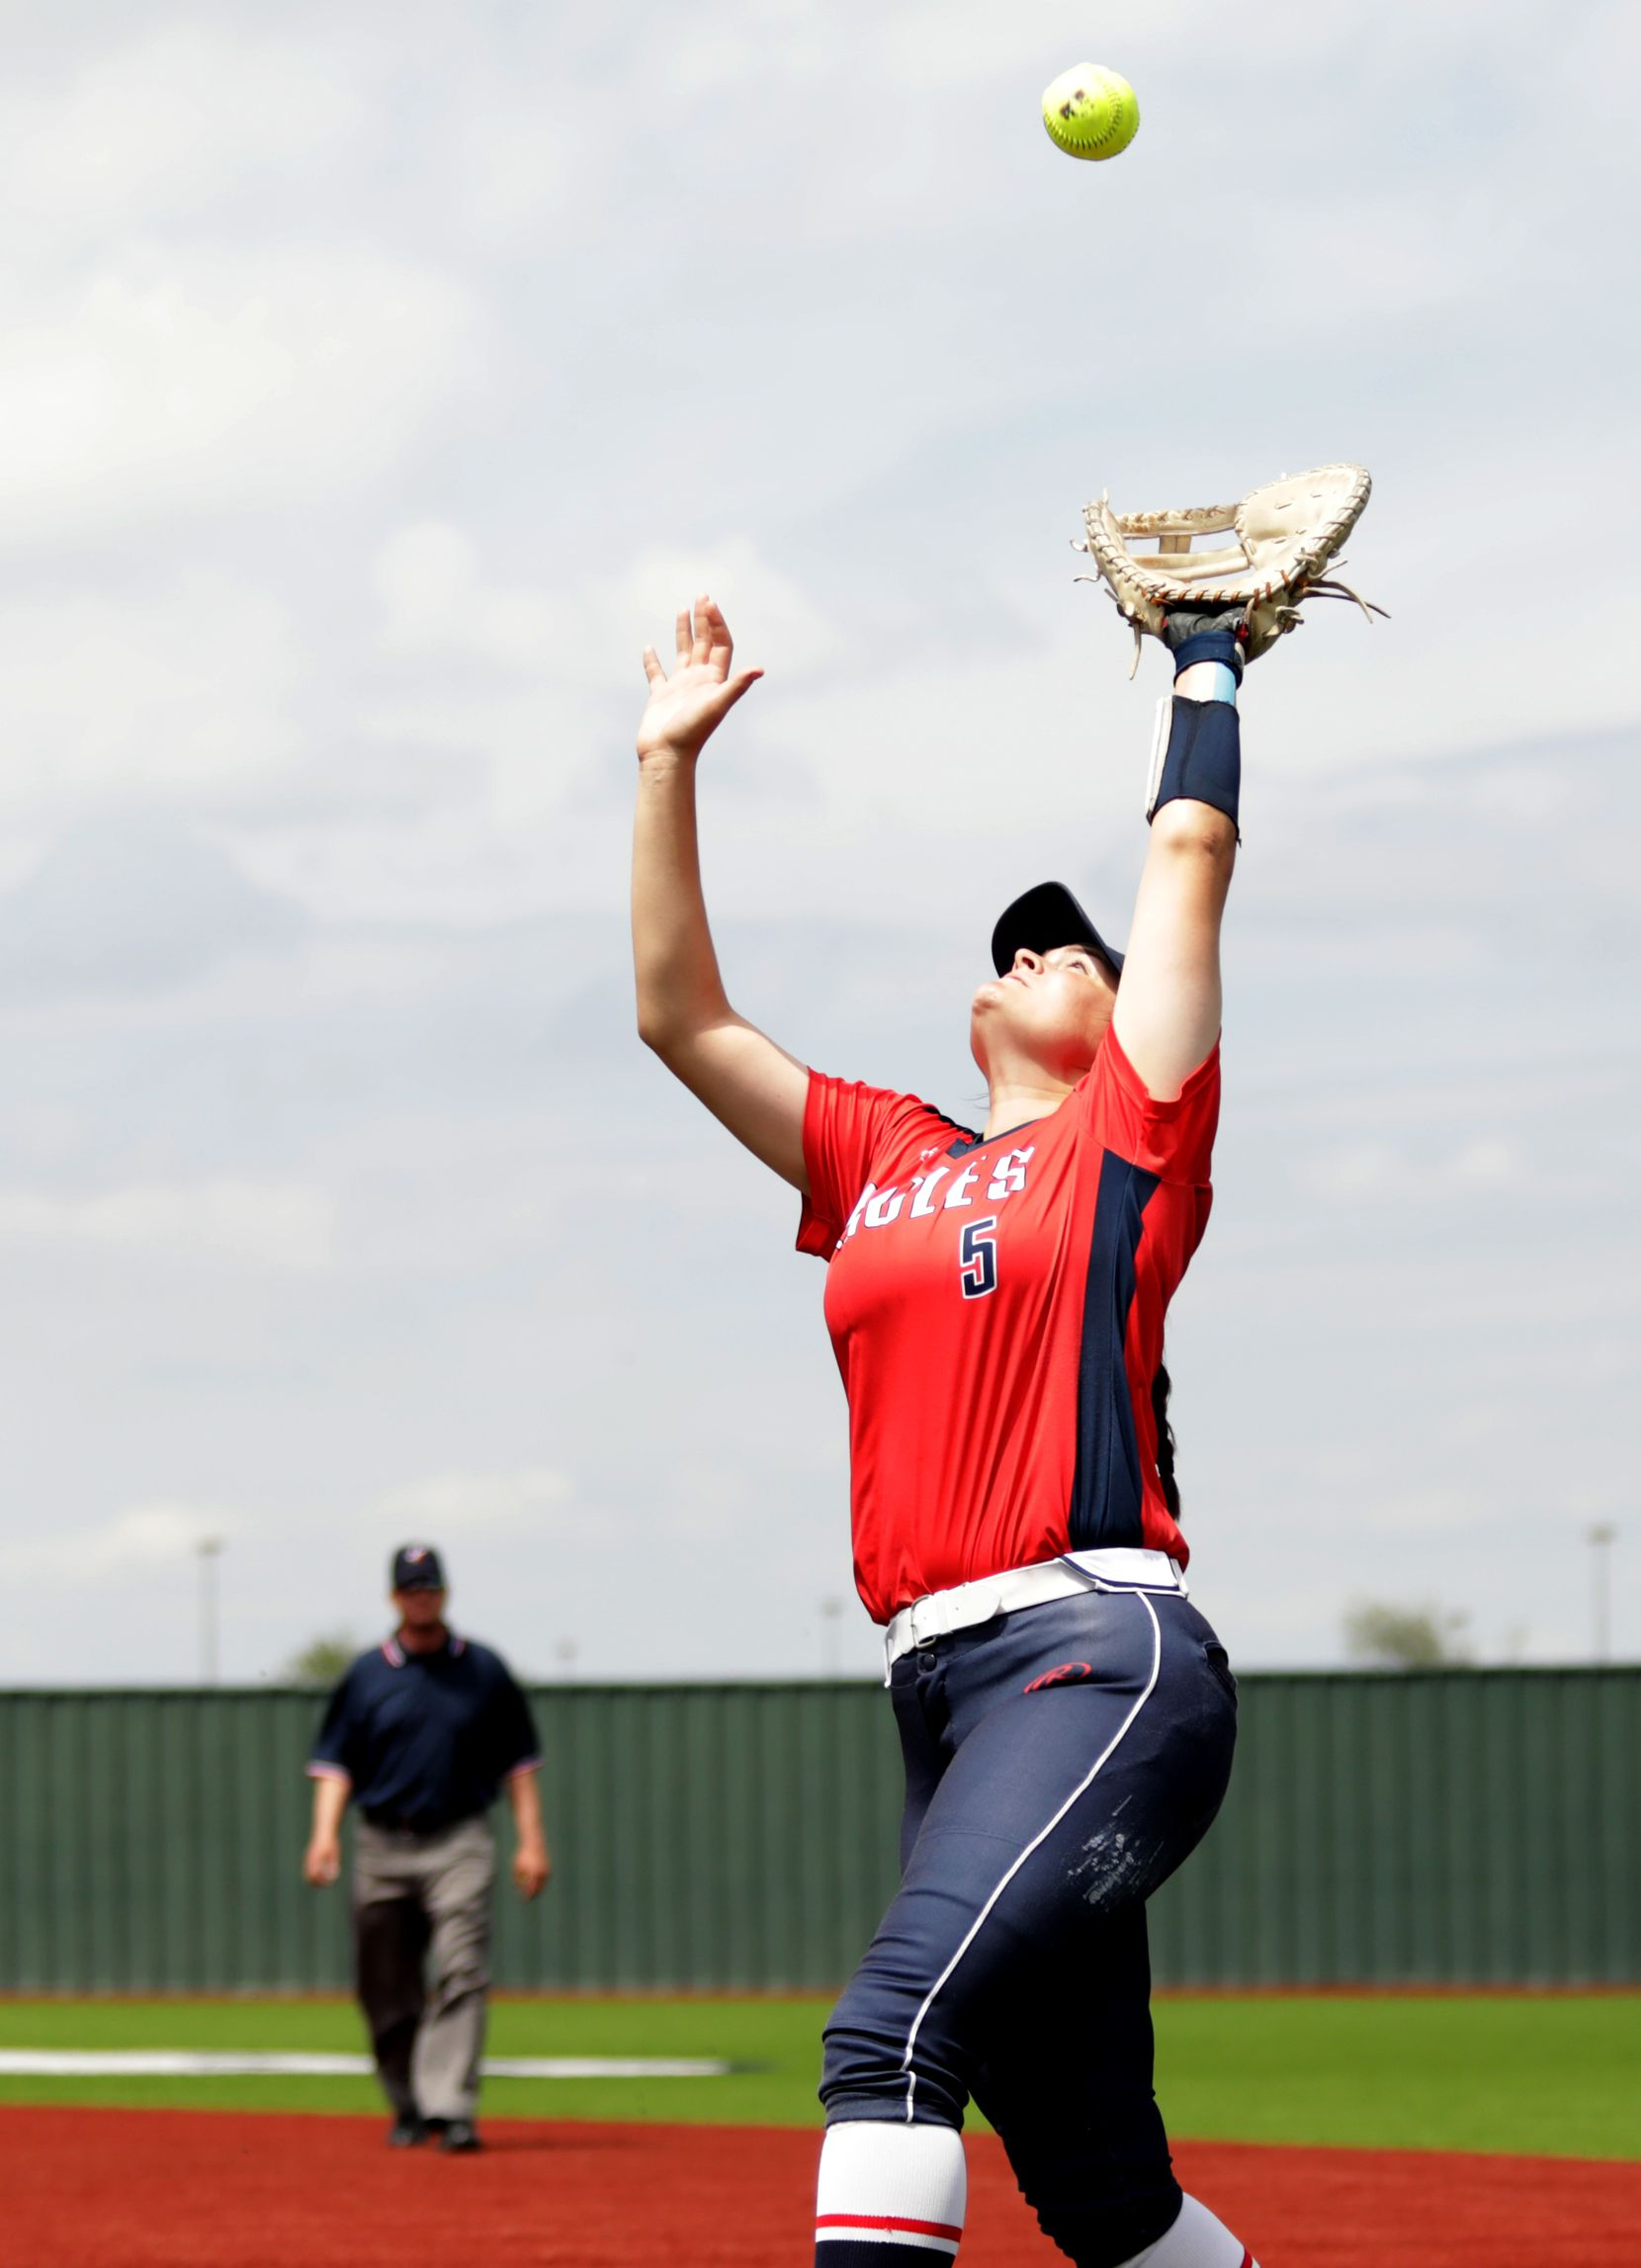 Allen High School player #5, Brooklyn Purtell, takes out a Flower Mound High School hitter during a softball game at Allen High School in Allen, TX, on May 15, 2021. (Jason Janik/Special Contributor)